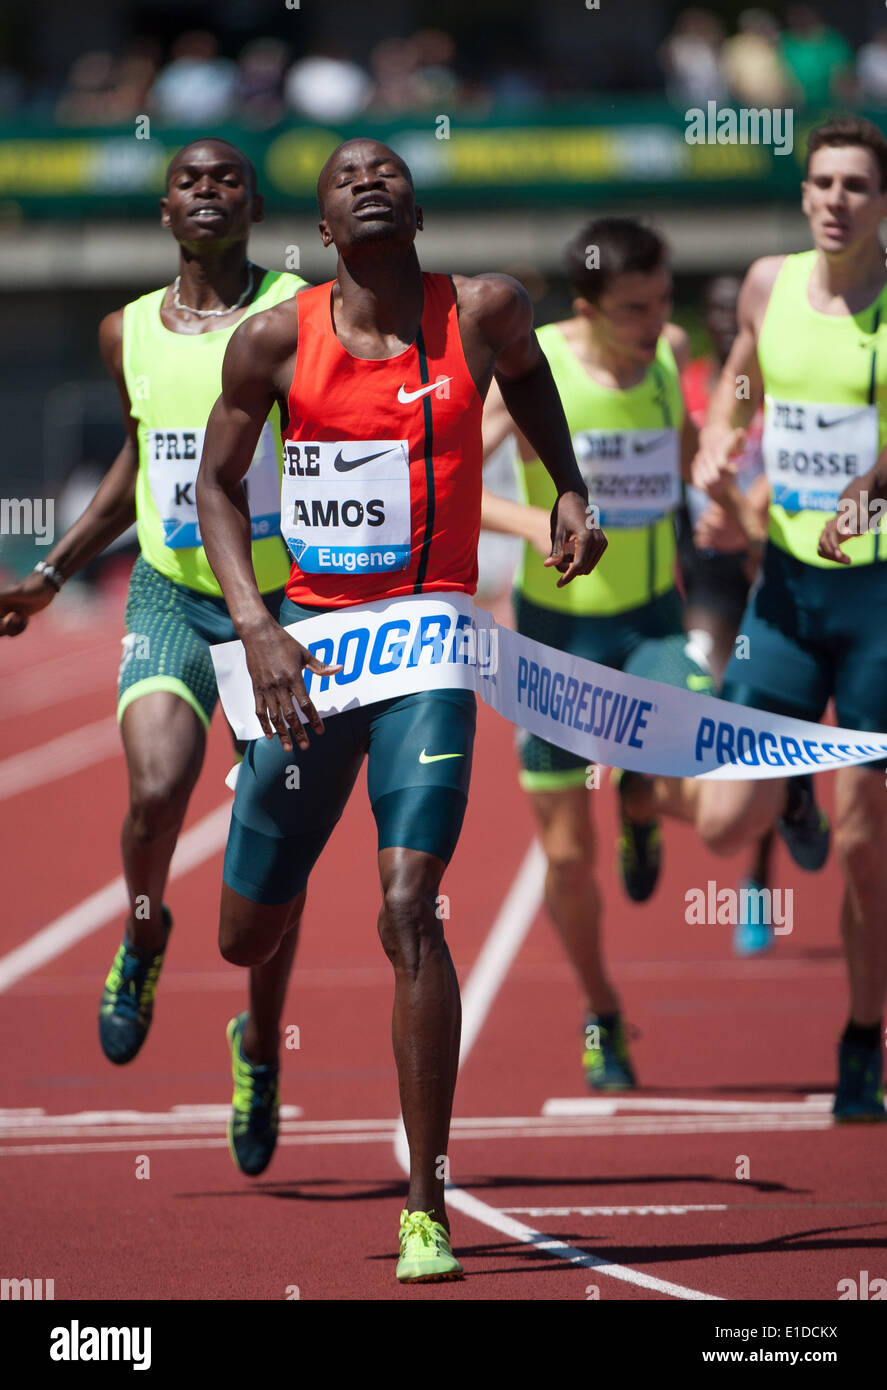 Eugene, OR, USA. 31st May, 2014. Nijel Amos of Botswana wins the Men's 800m at the 2014 Prefontaine Classic with Stock Photo